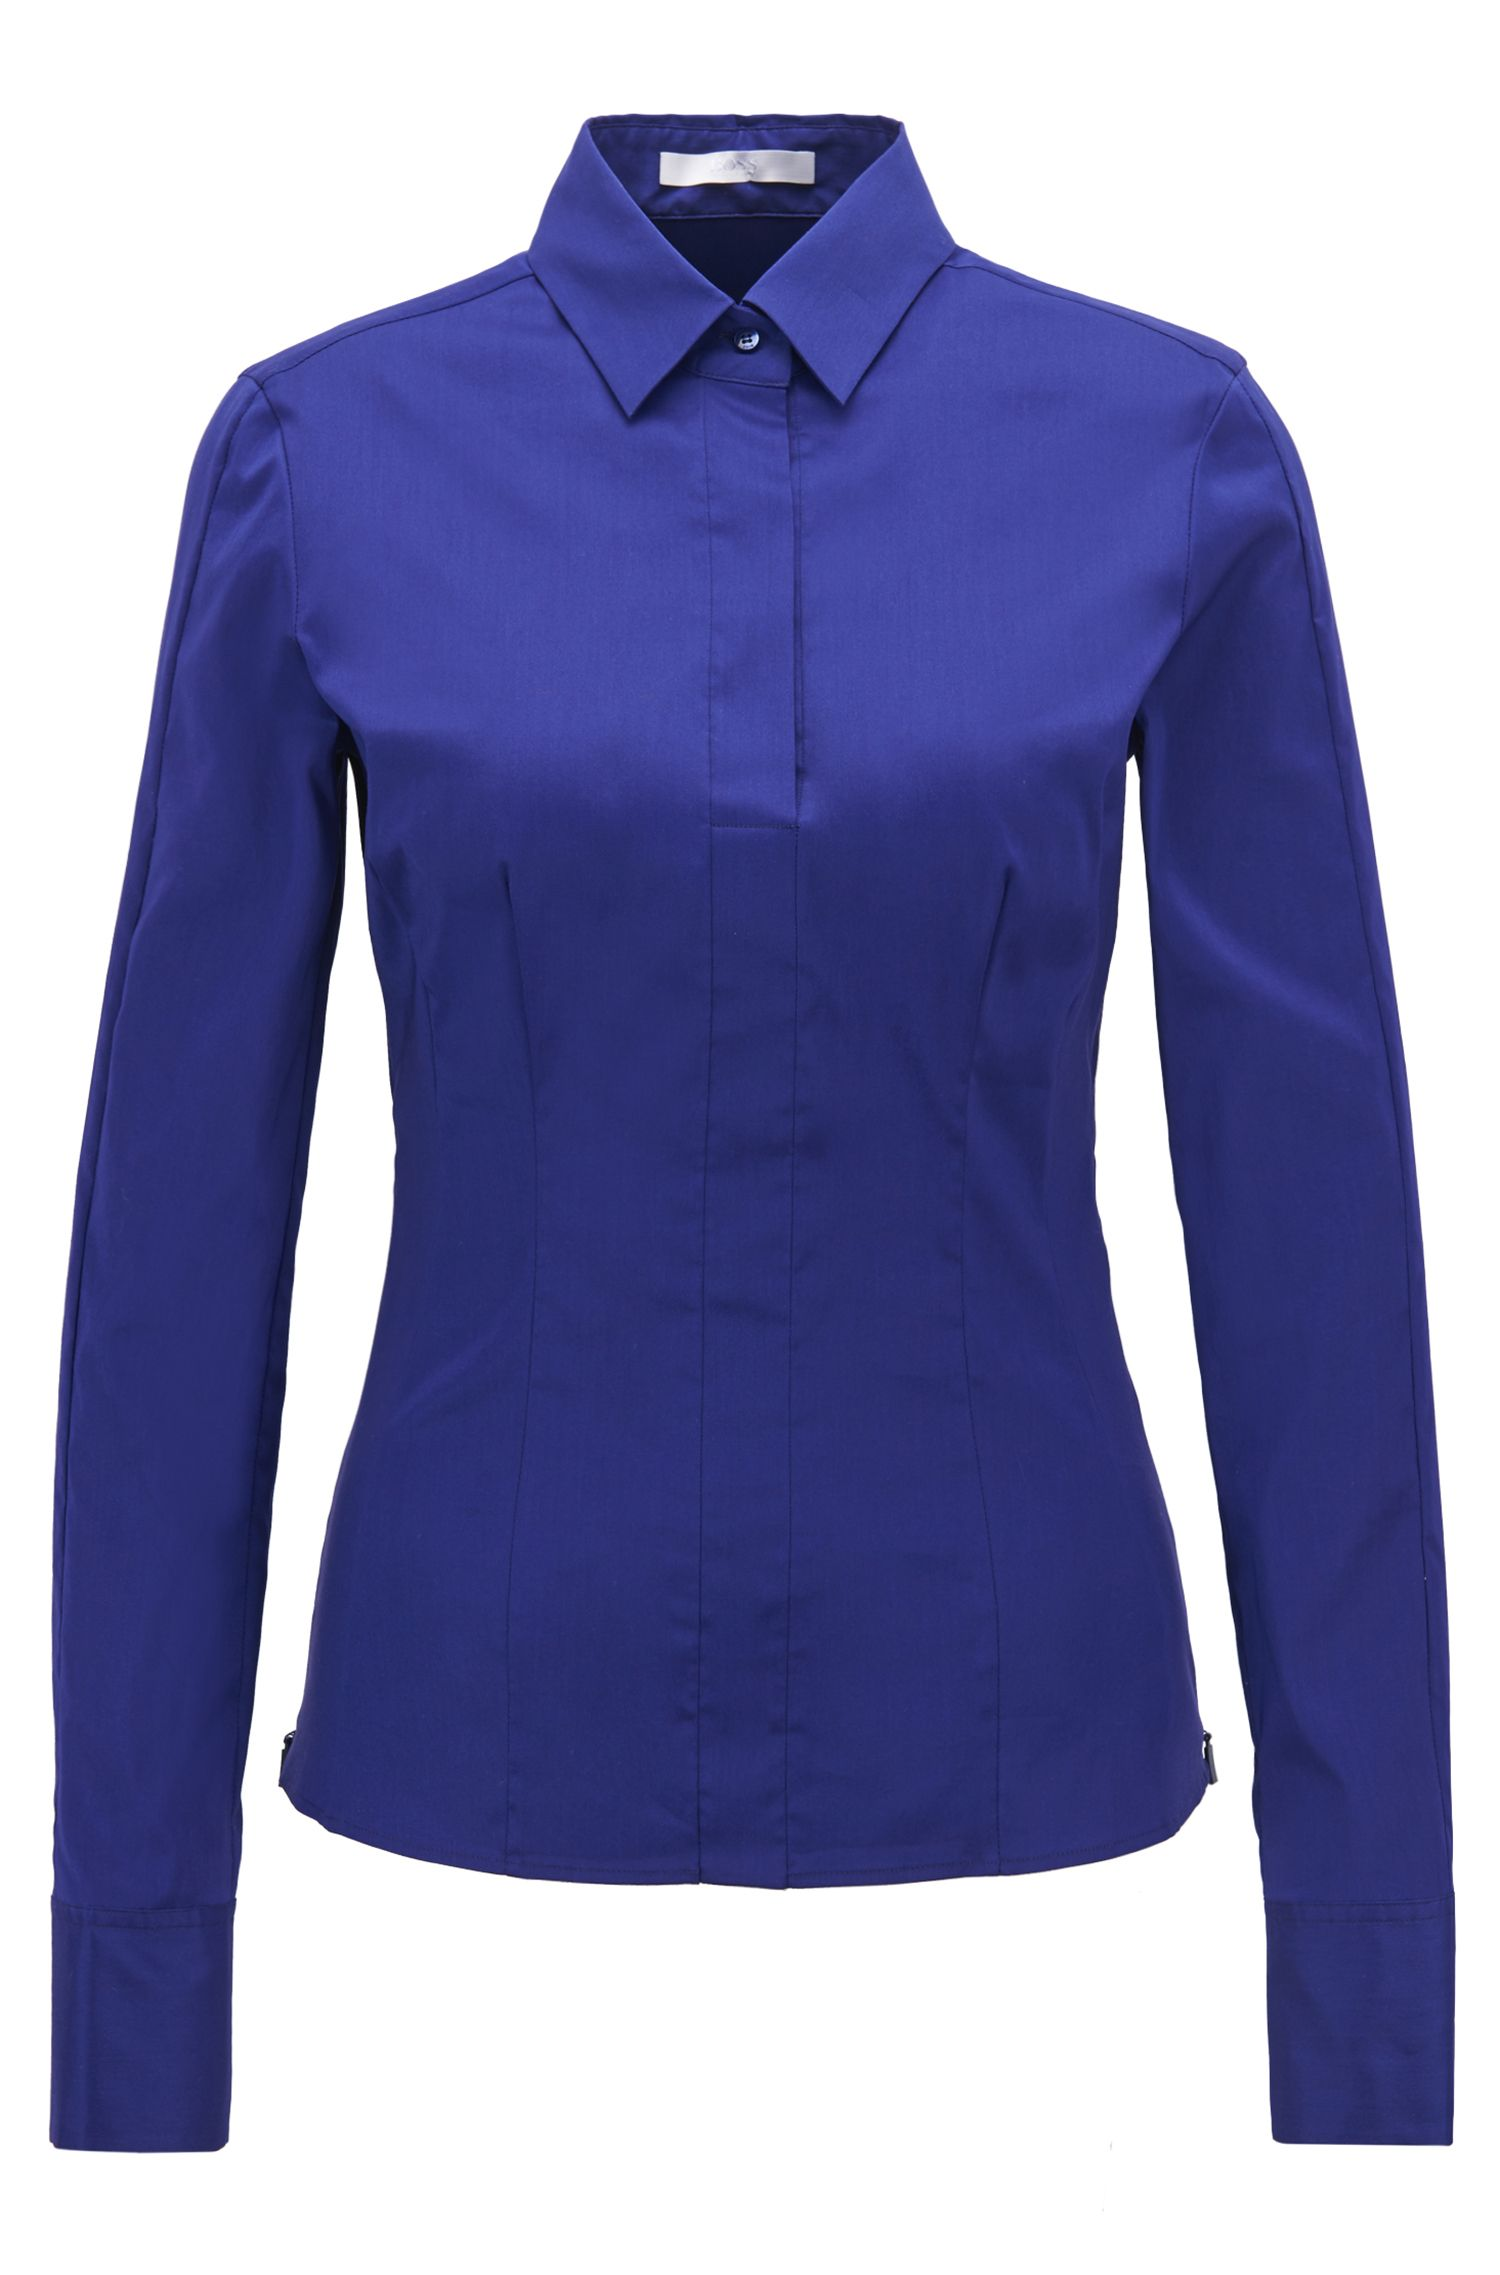 Slim-fit blouse with darted seam detail